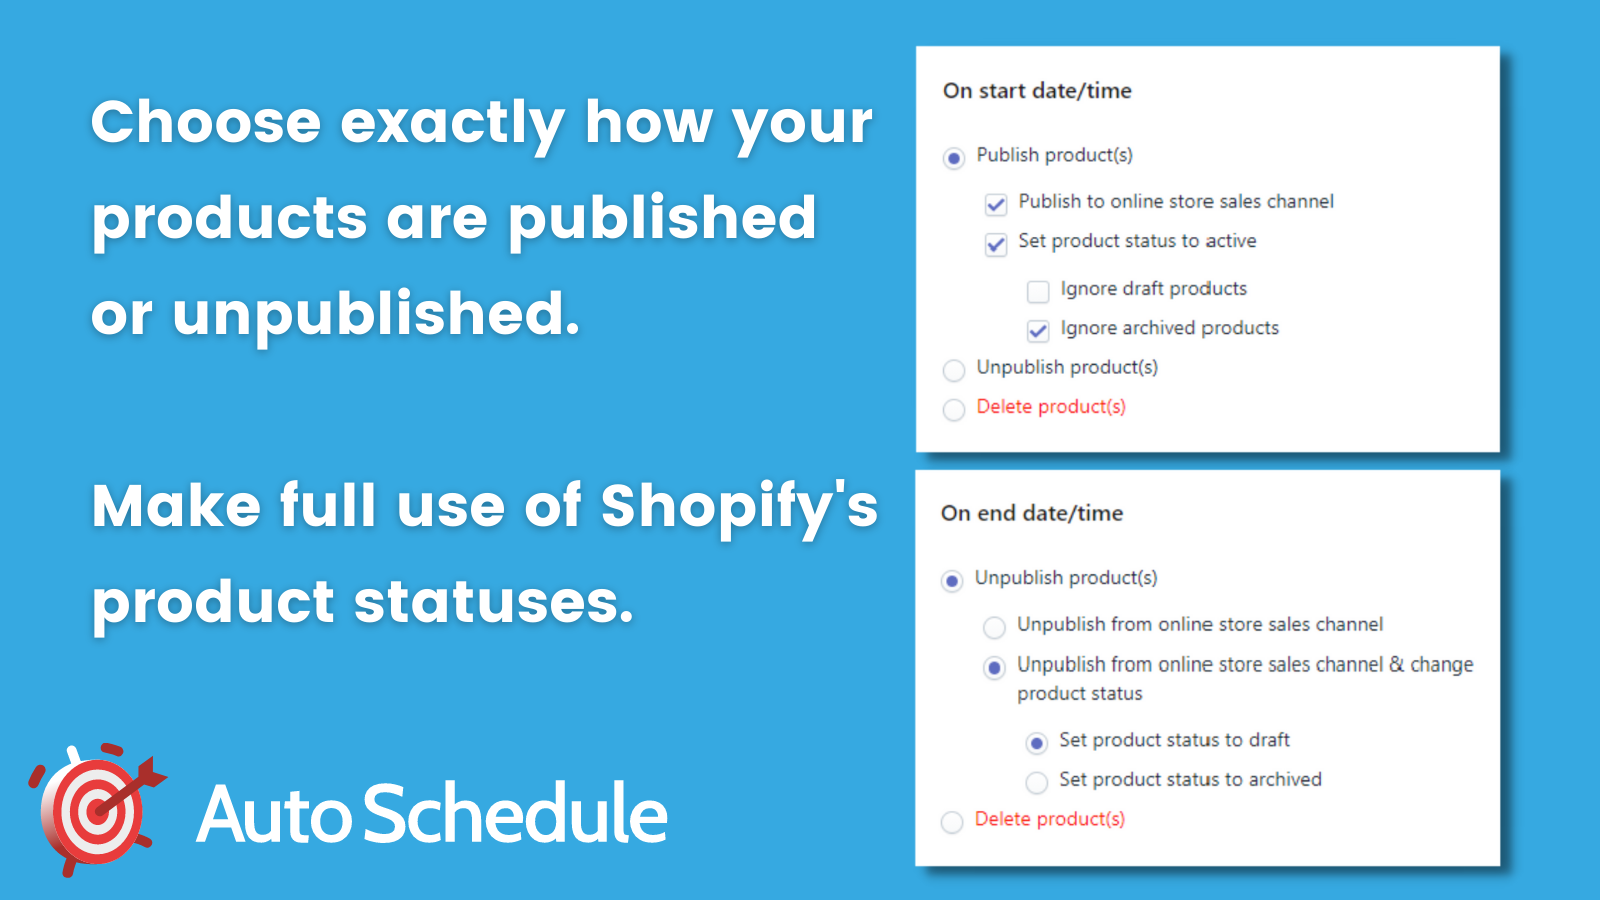 Make full use of Shopify's product statuses.